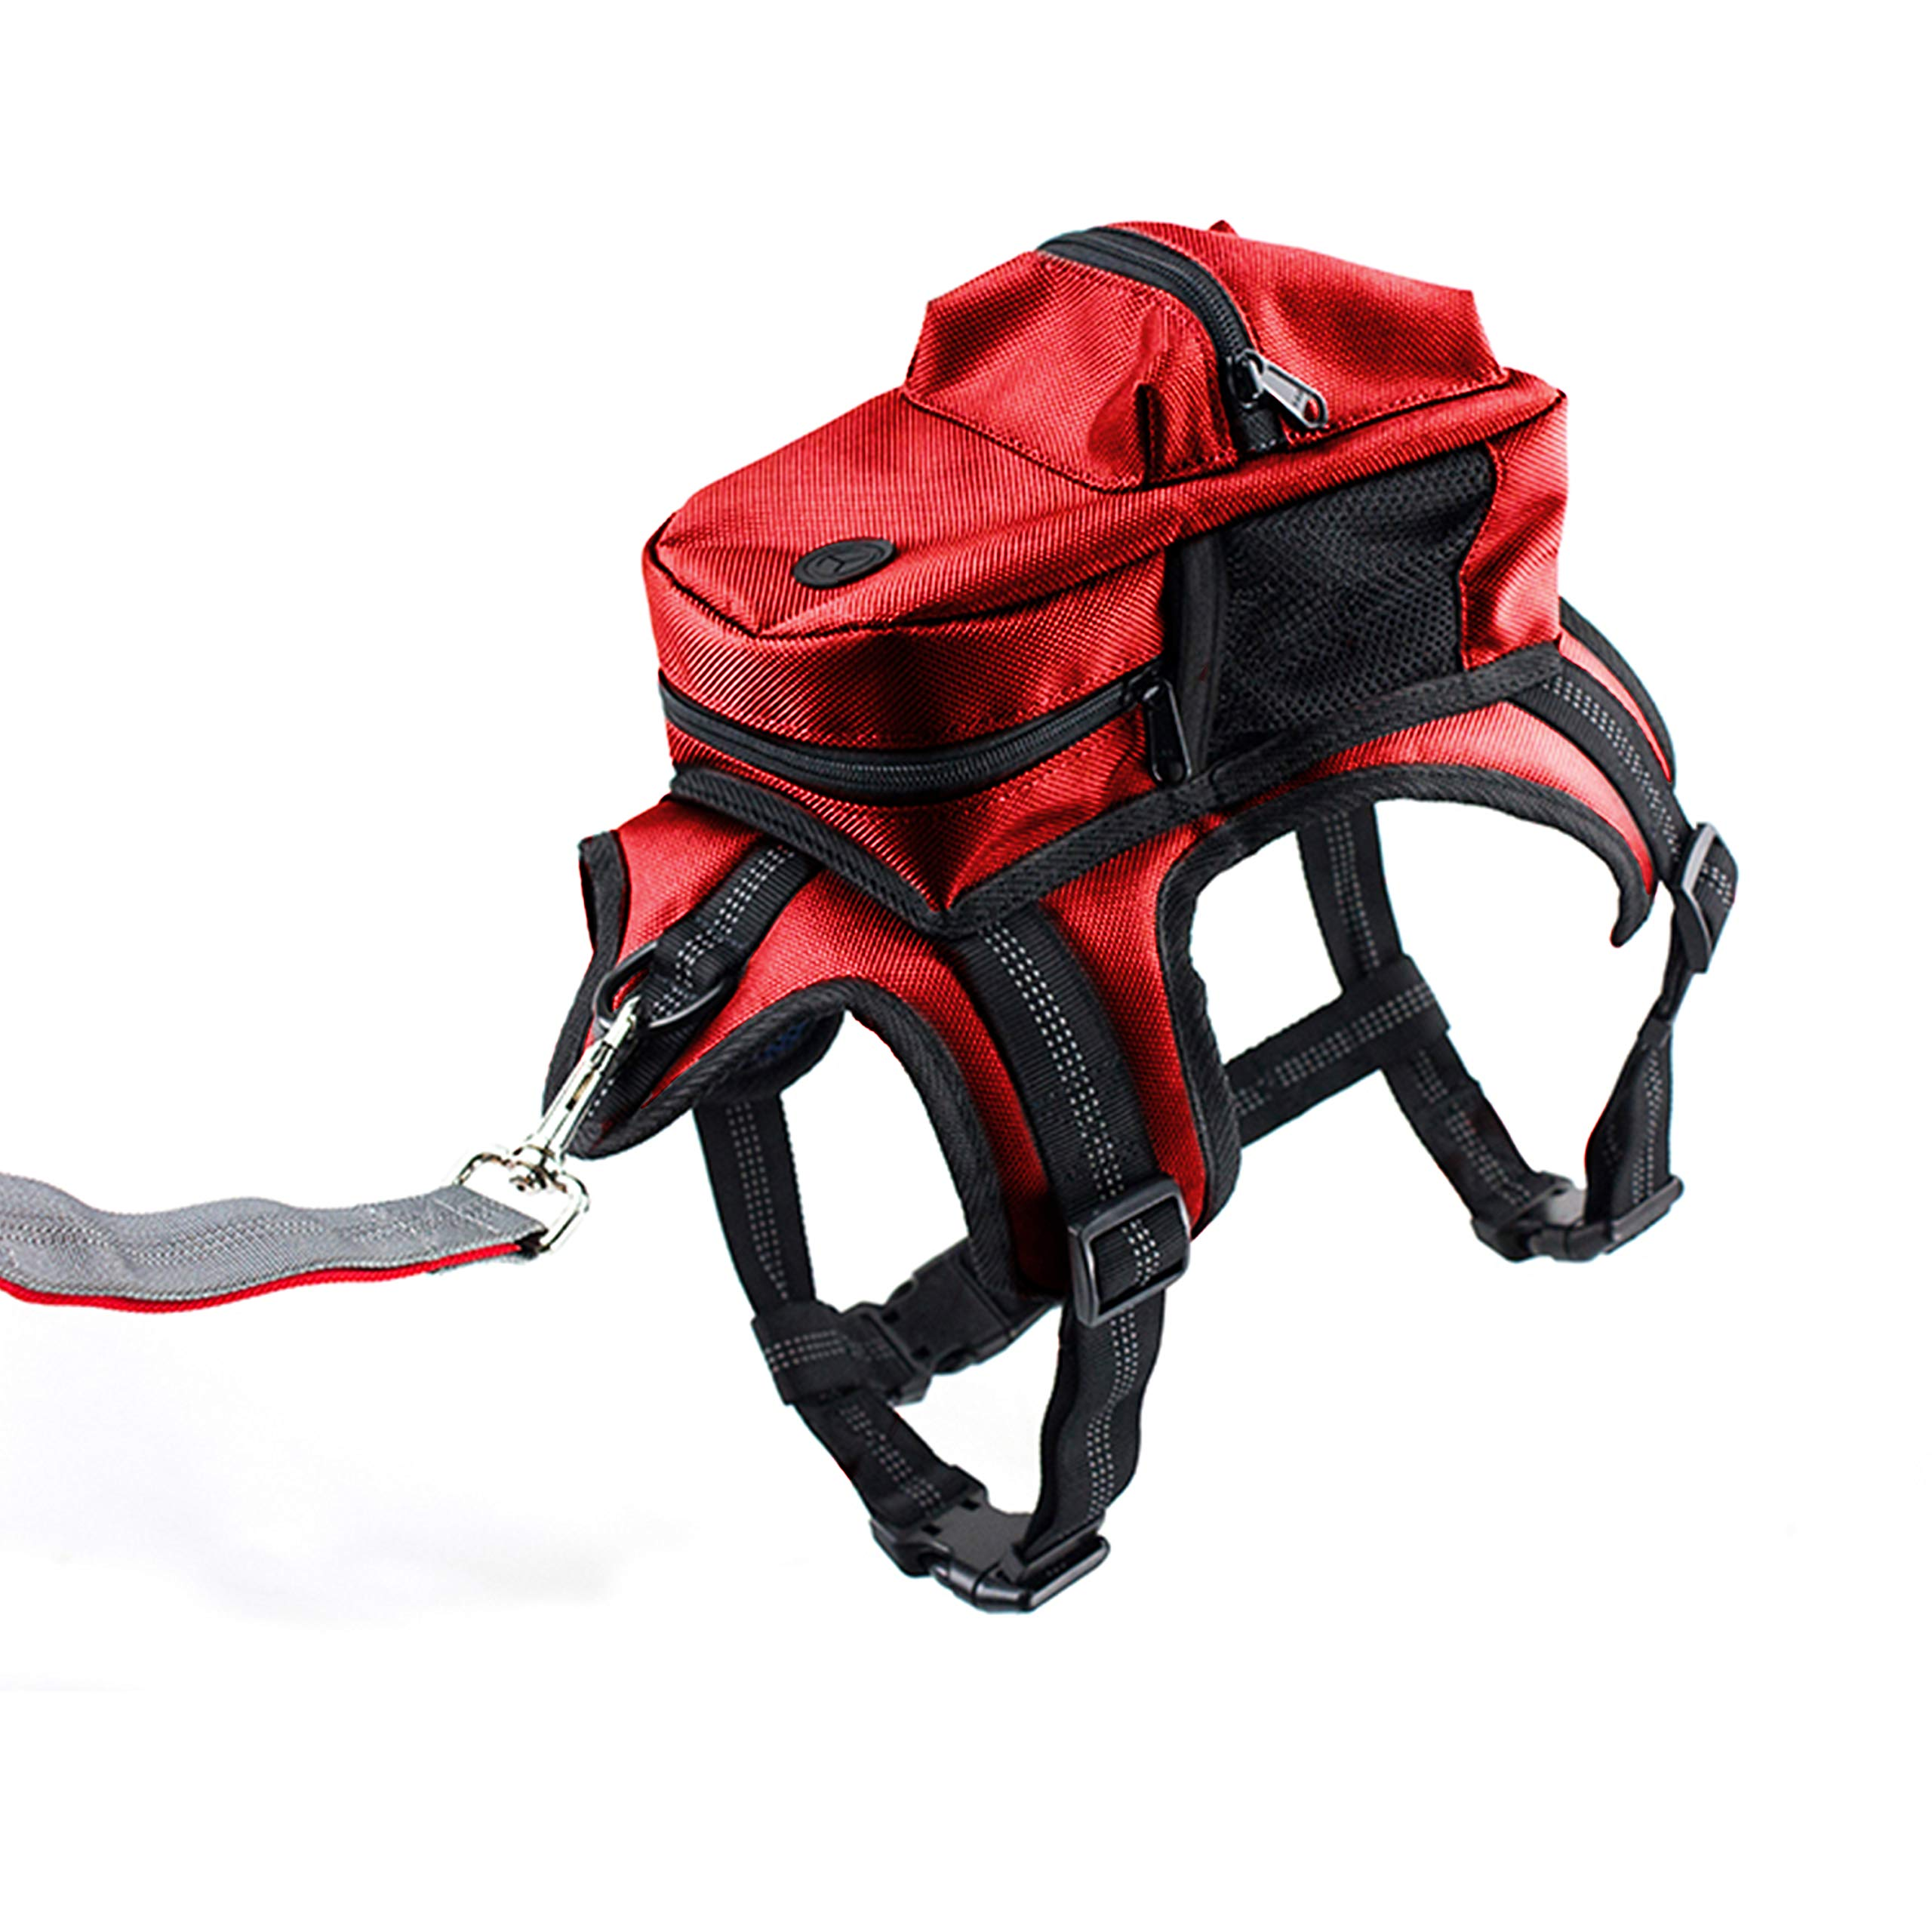 Kaynine Dog Backpack for Travel Camping Hiking. (Medium, Red)